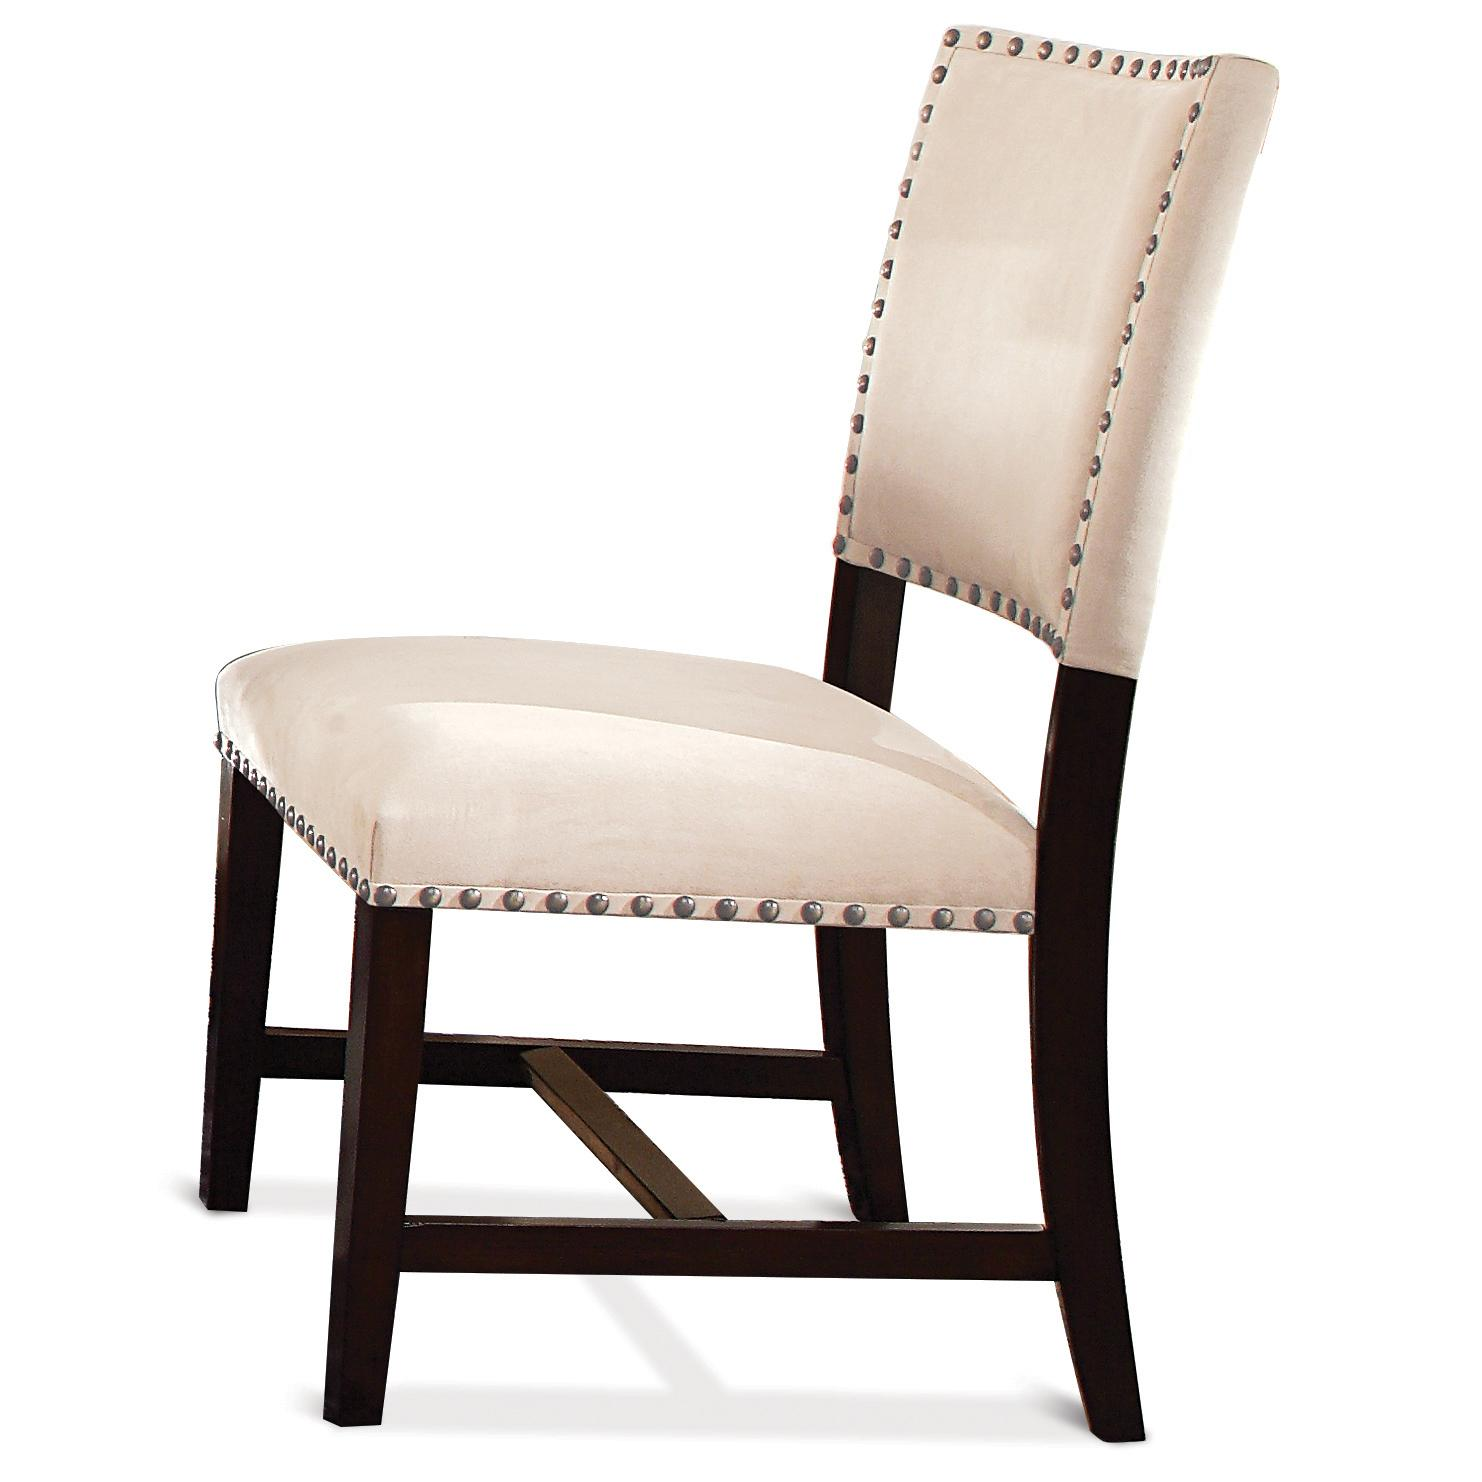 Riverside Furniture Mix-N-Match Chairs Micro-Fiber Uph Parson Chair - Item Number: 36664